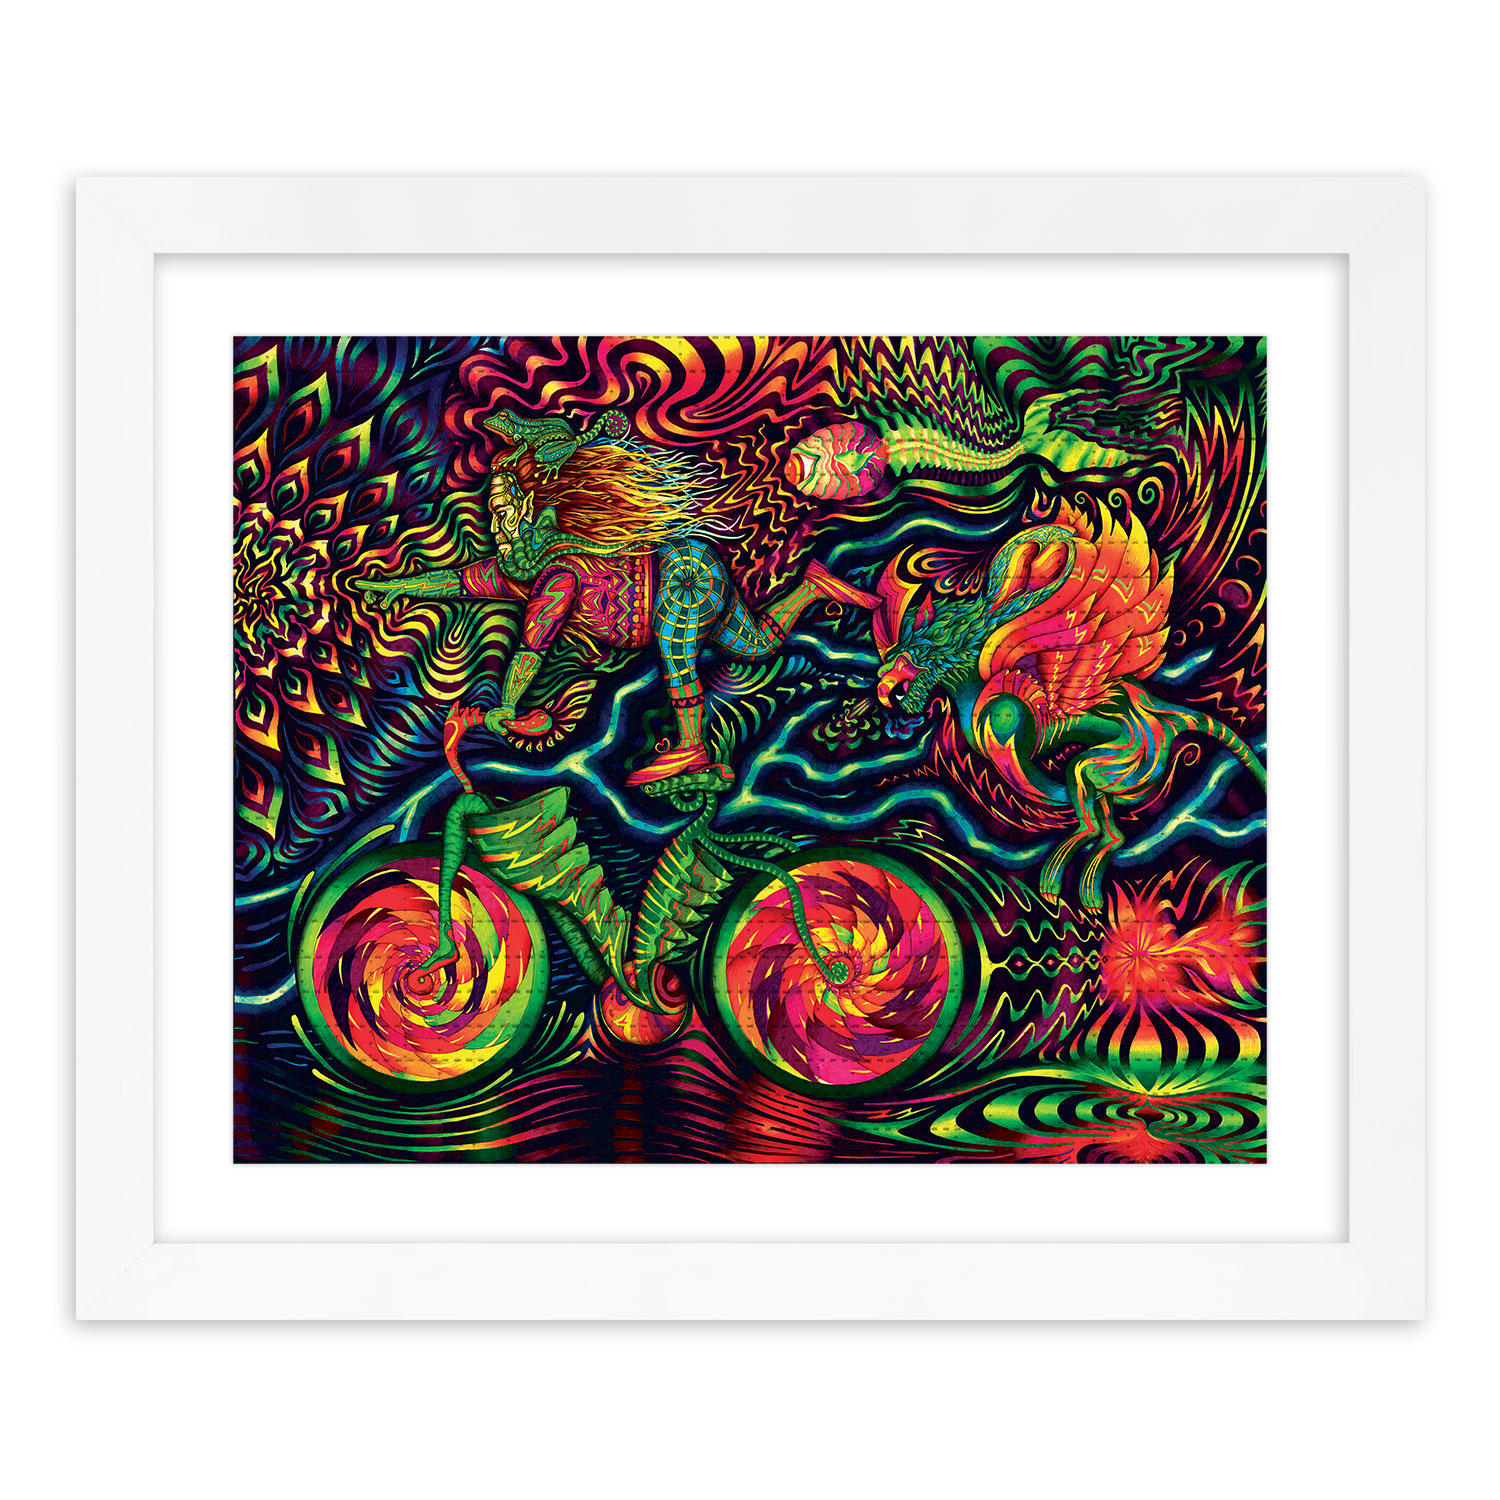 Vedran Misic Art Print - Bicycle Ride - Blotter Variant